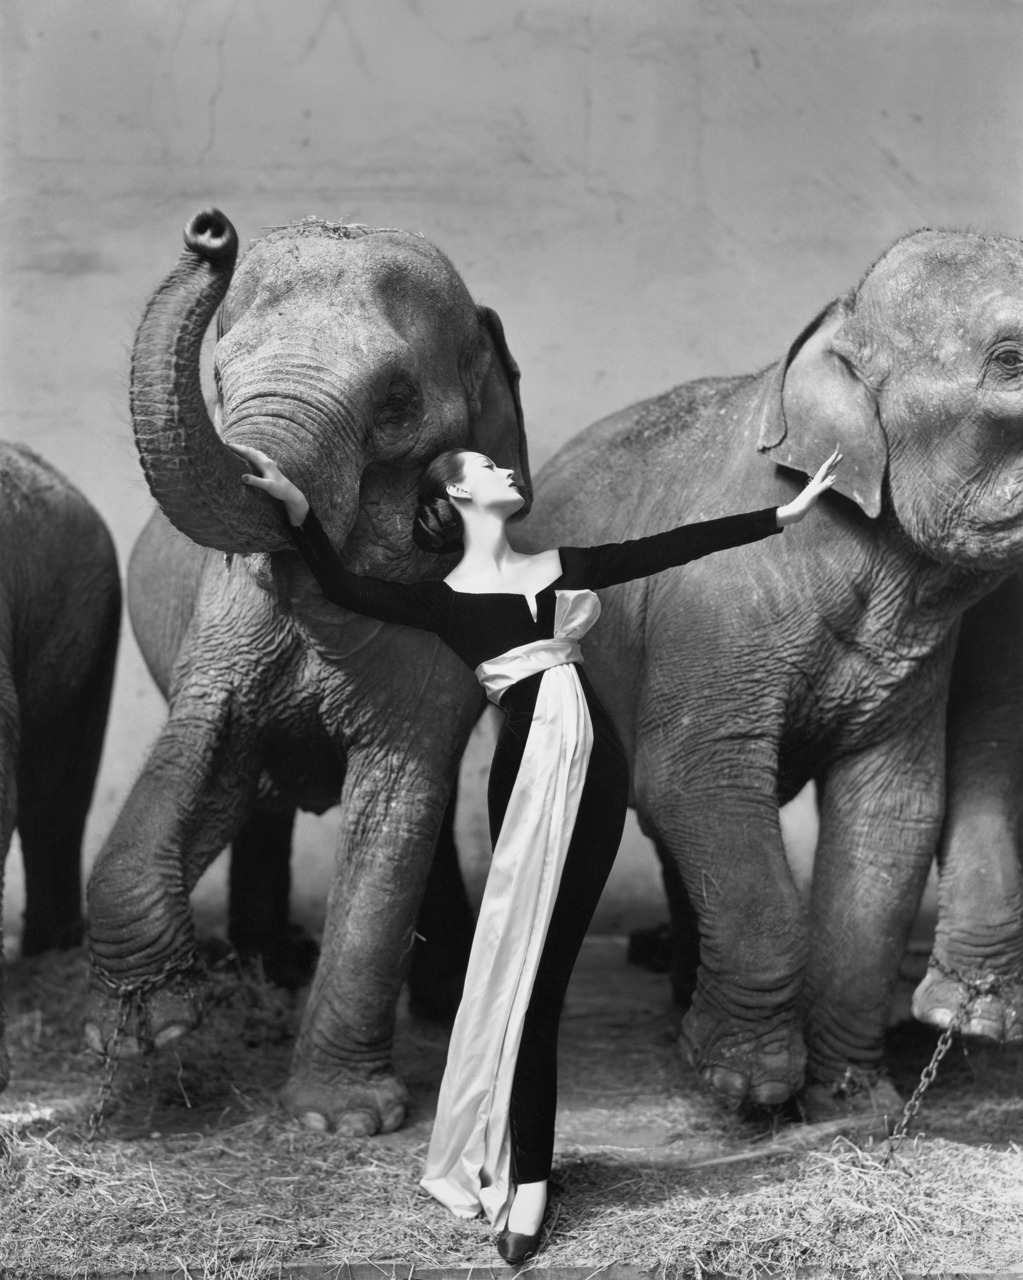 Dovima with Elephants, 1955 - Richard Avedon, from the Photography Book. Richard Avedon's 1955 photo took fashion out of the studio and sought to capture age as much as youthful beauty.